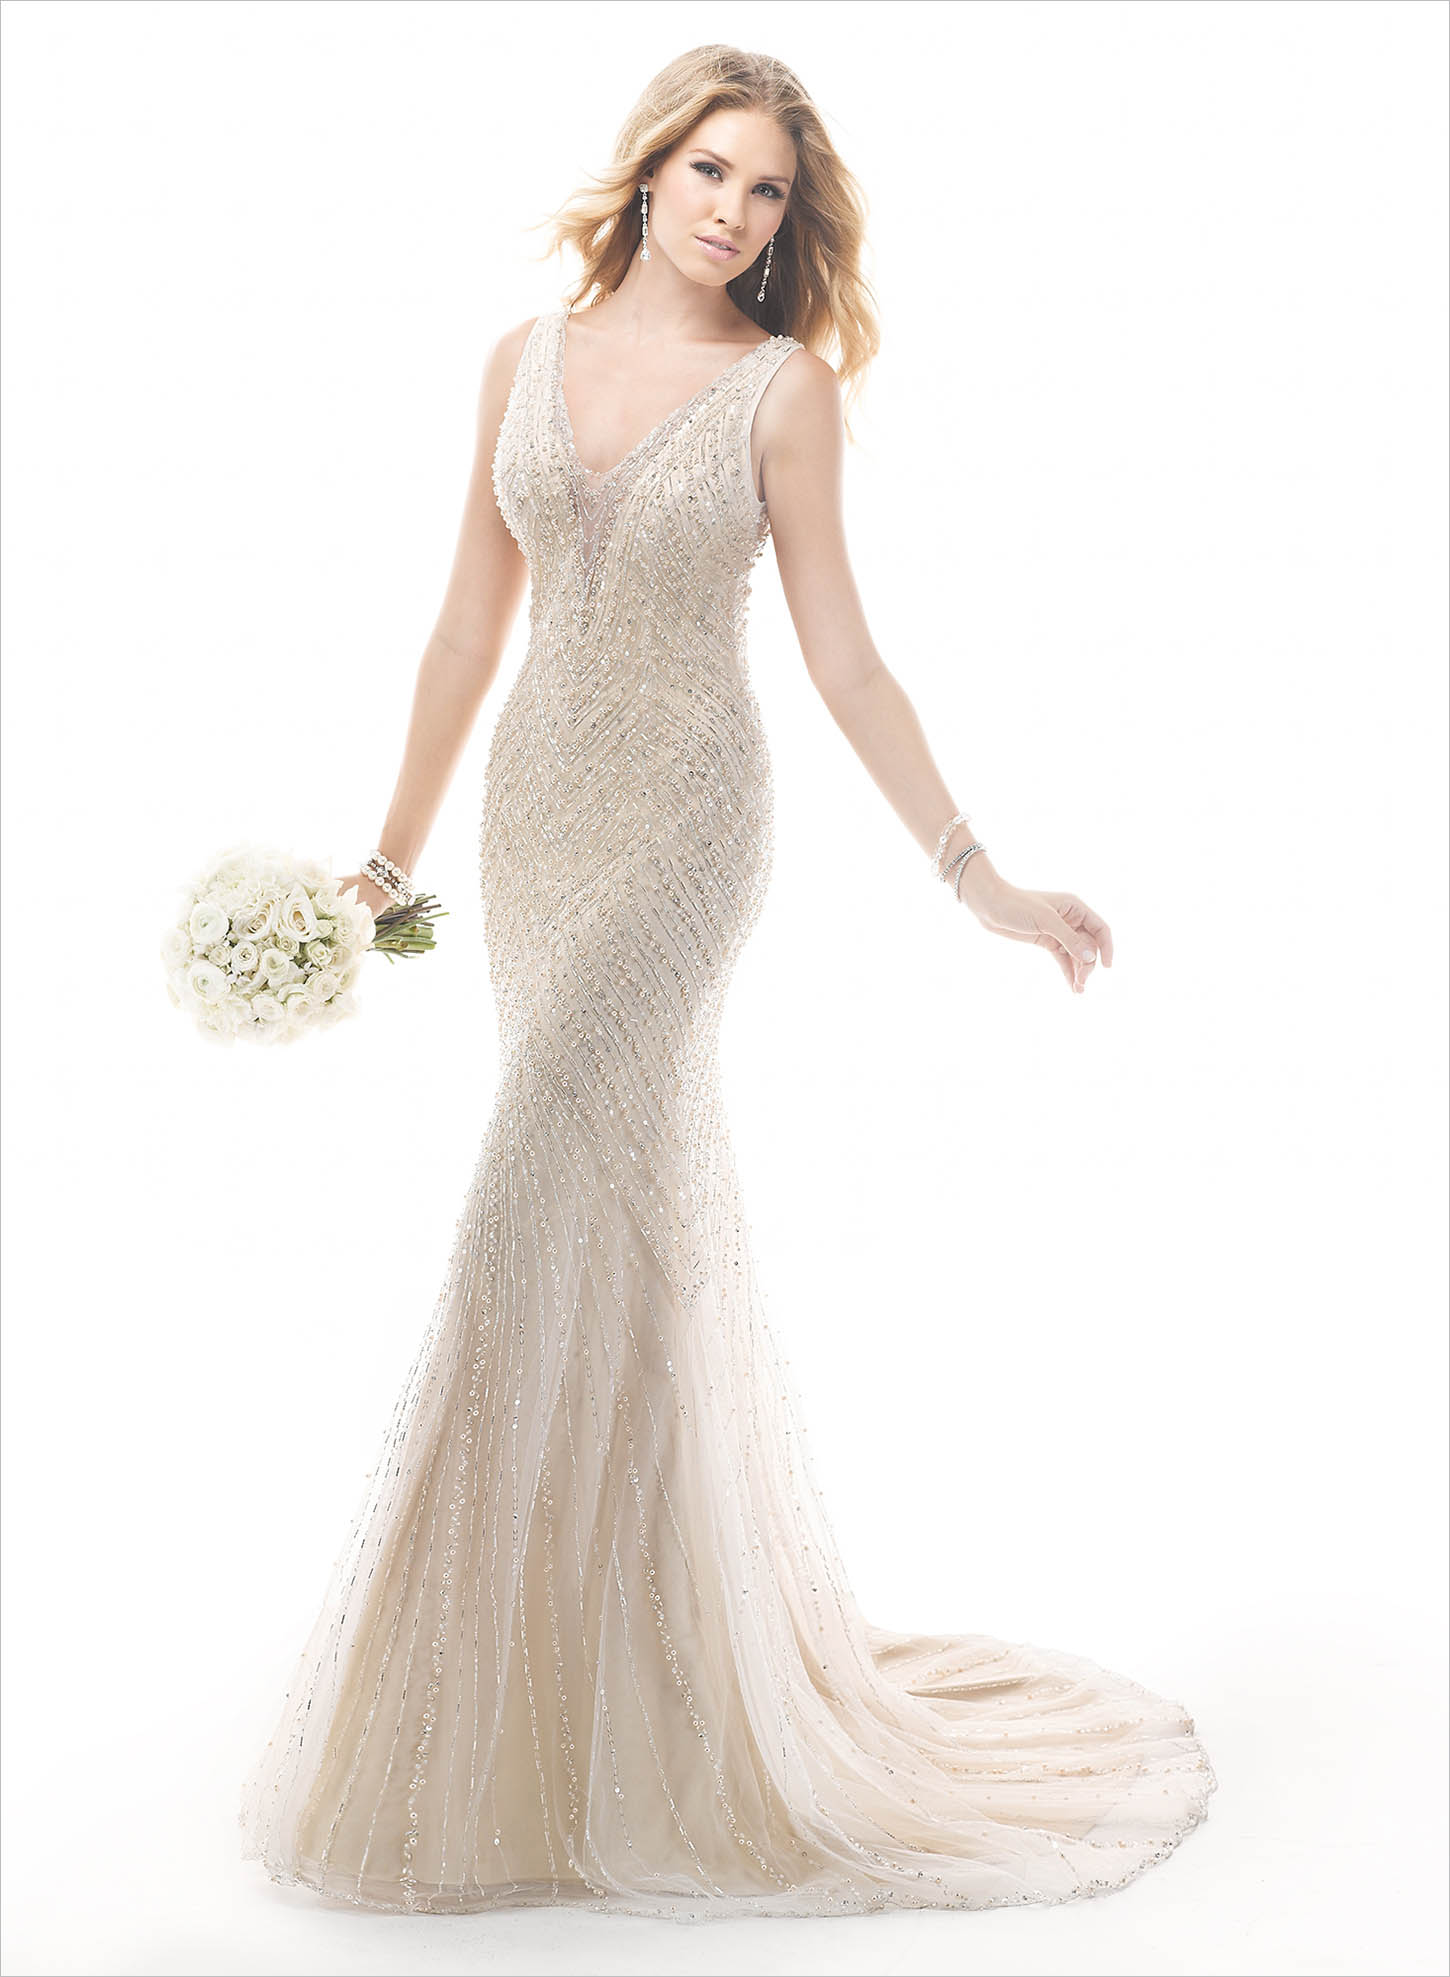 The best gowns from the most in demand wedding dress designers the best gowns from the most in demand wedding dress designers part i ombrellifo Images